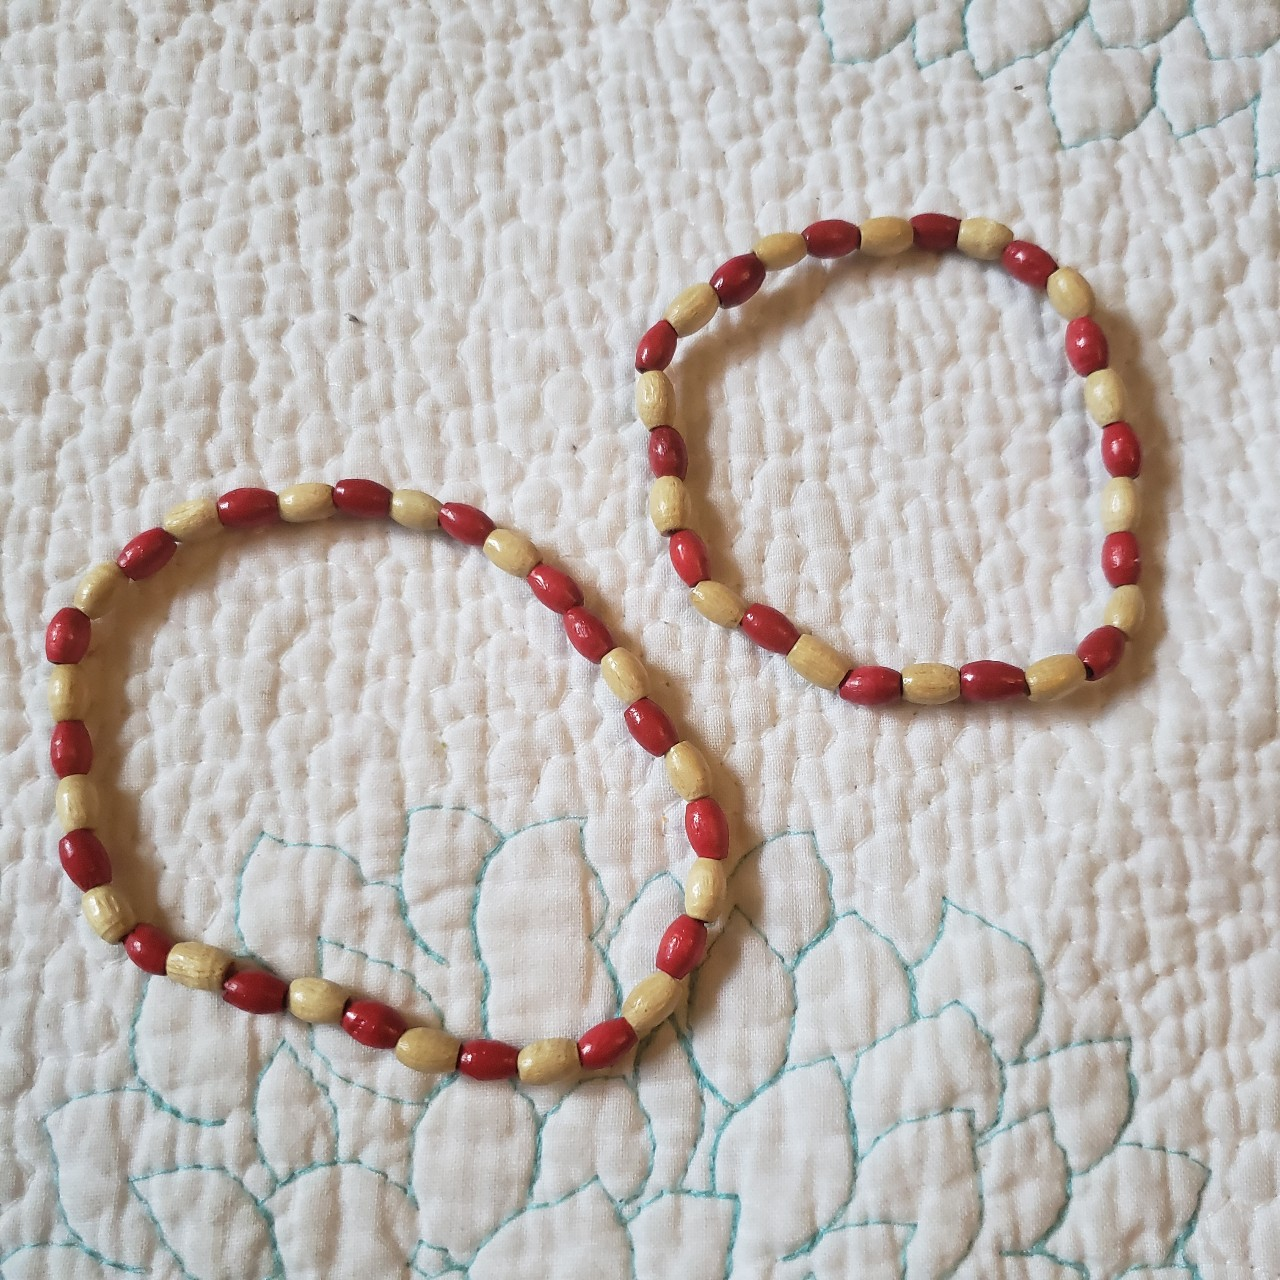 Product Image 1 - Handmade wooden bracelet and ankle